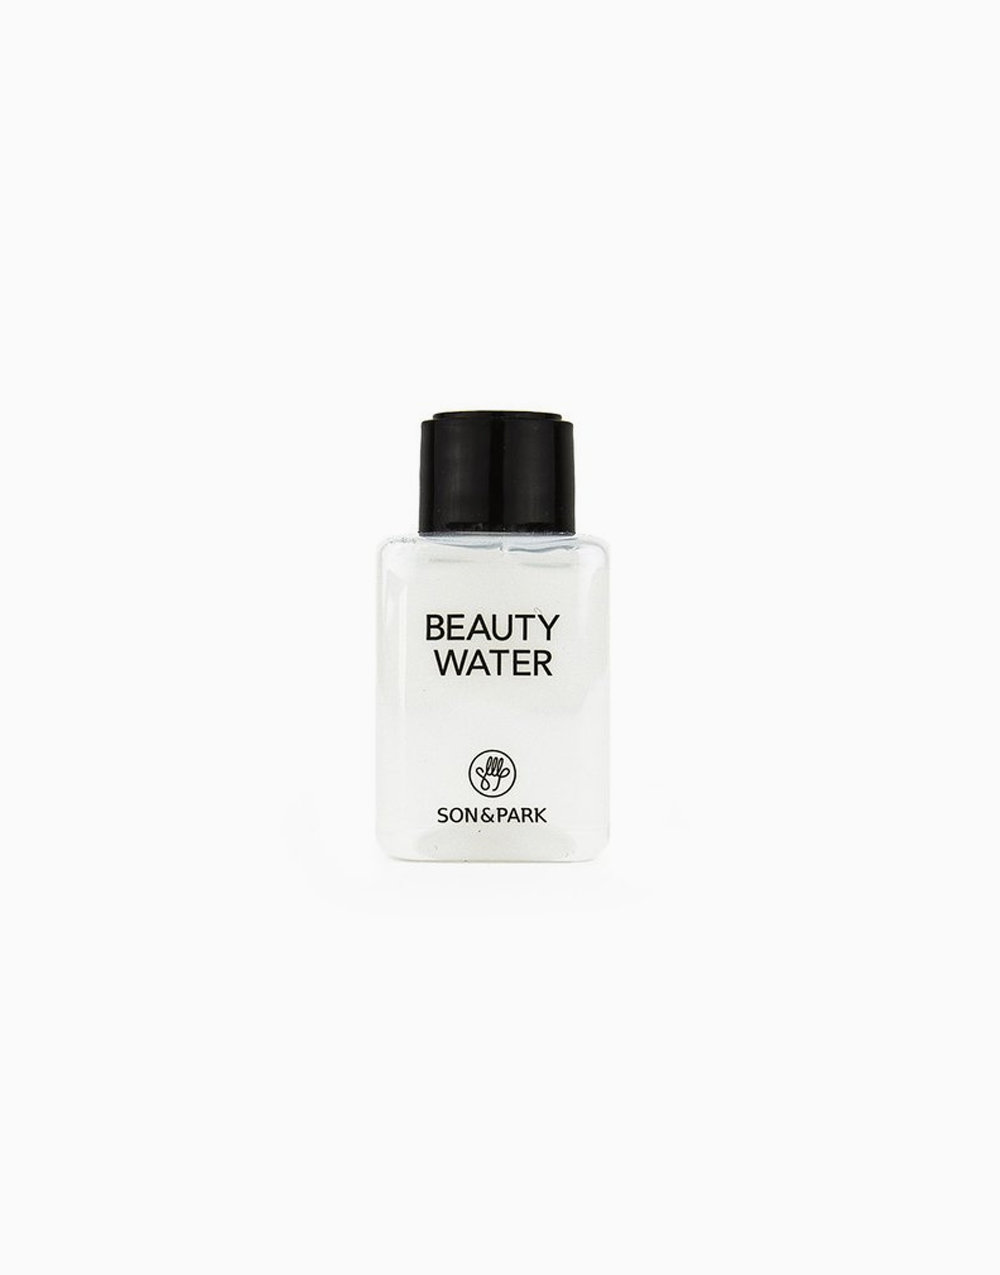 Beauty Water (30ml) by Son & Park